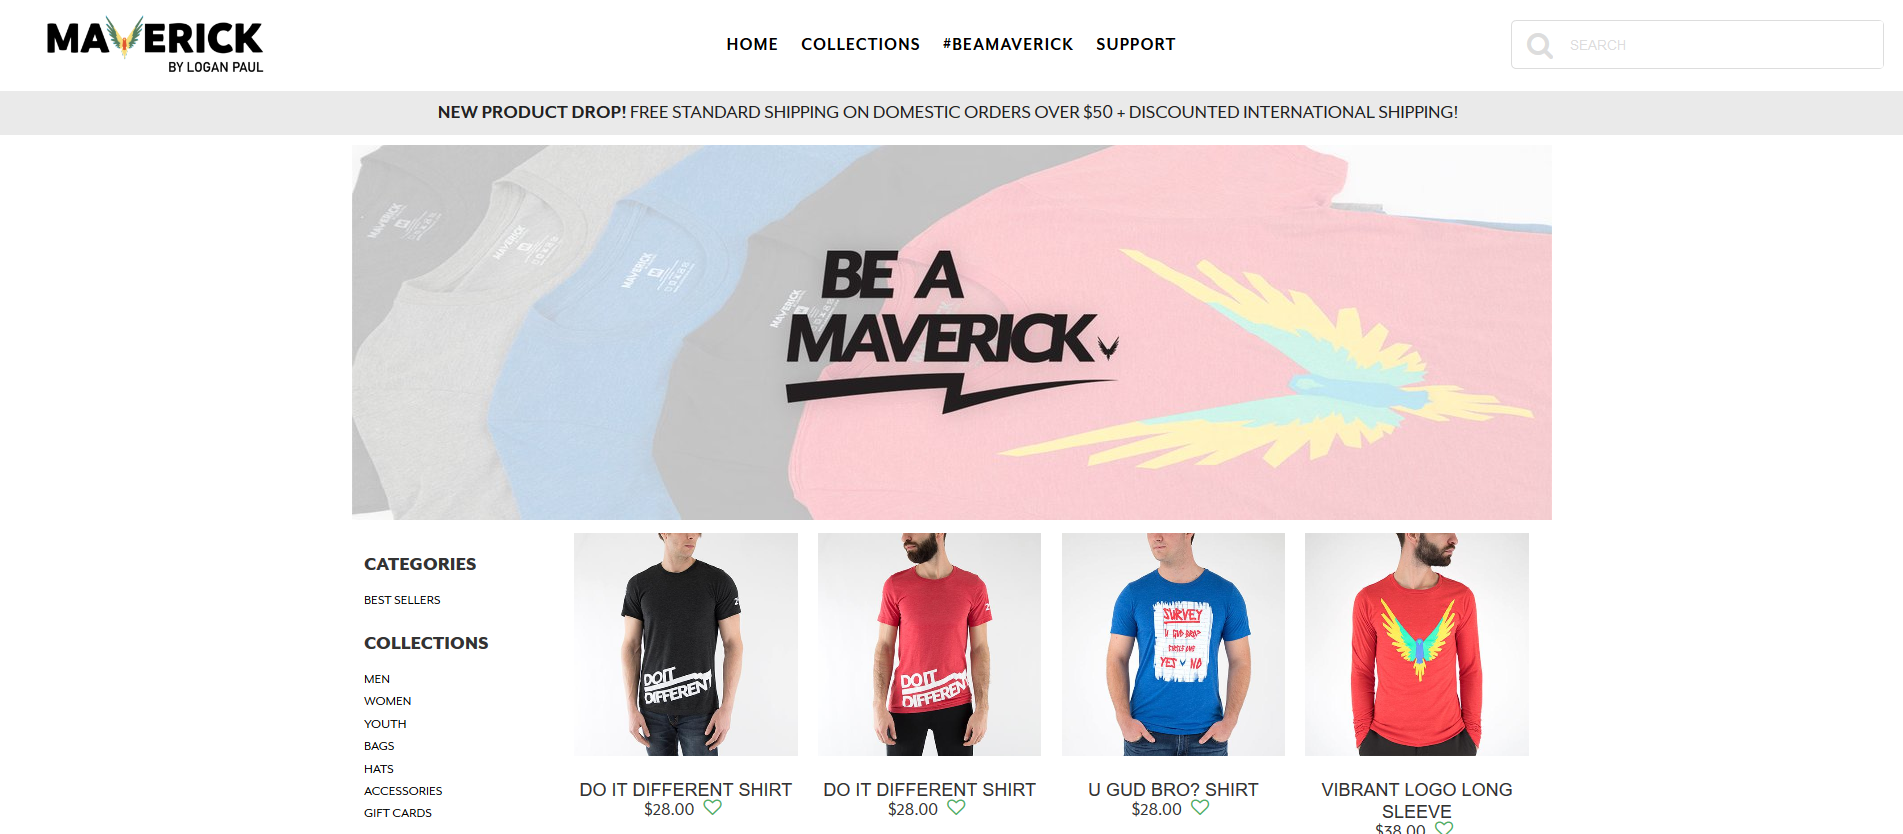 Logan paul brand Maverick website